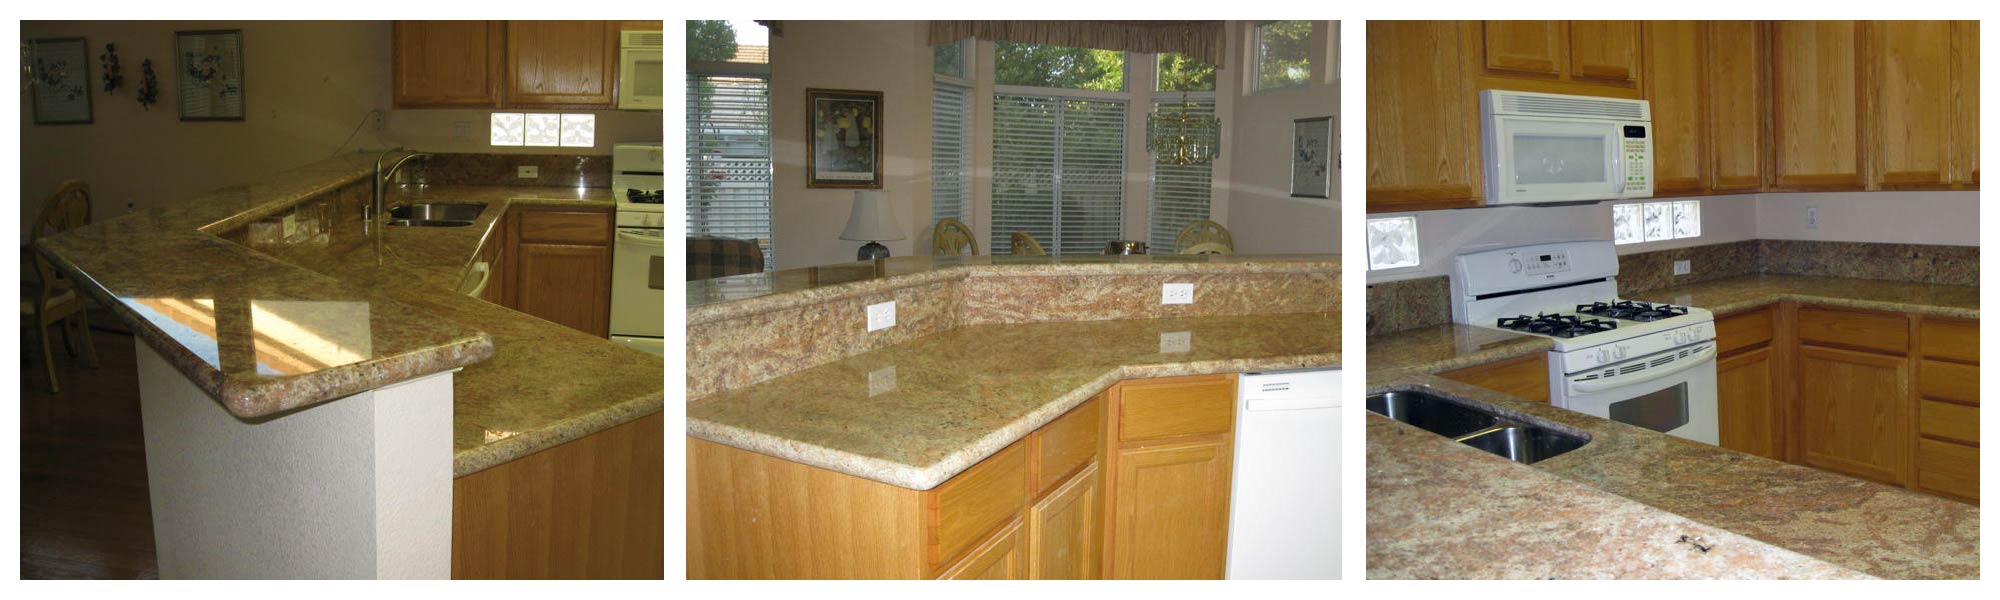 Tile and Granite and Tile and Granite